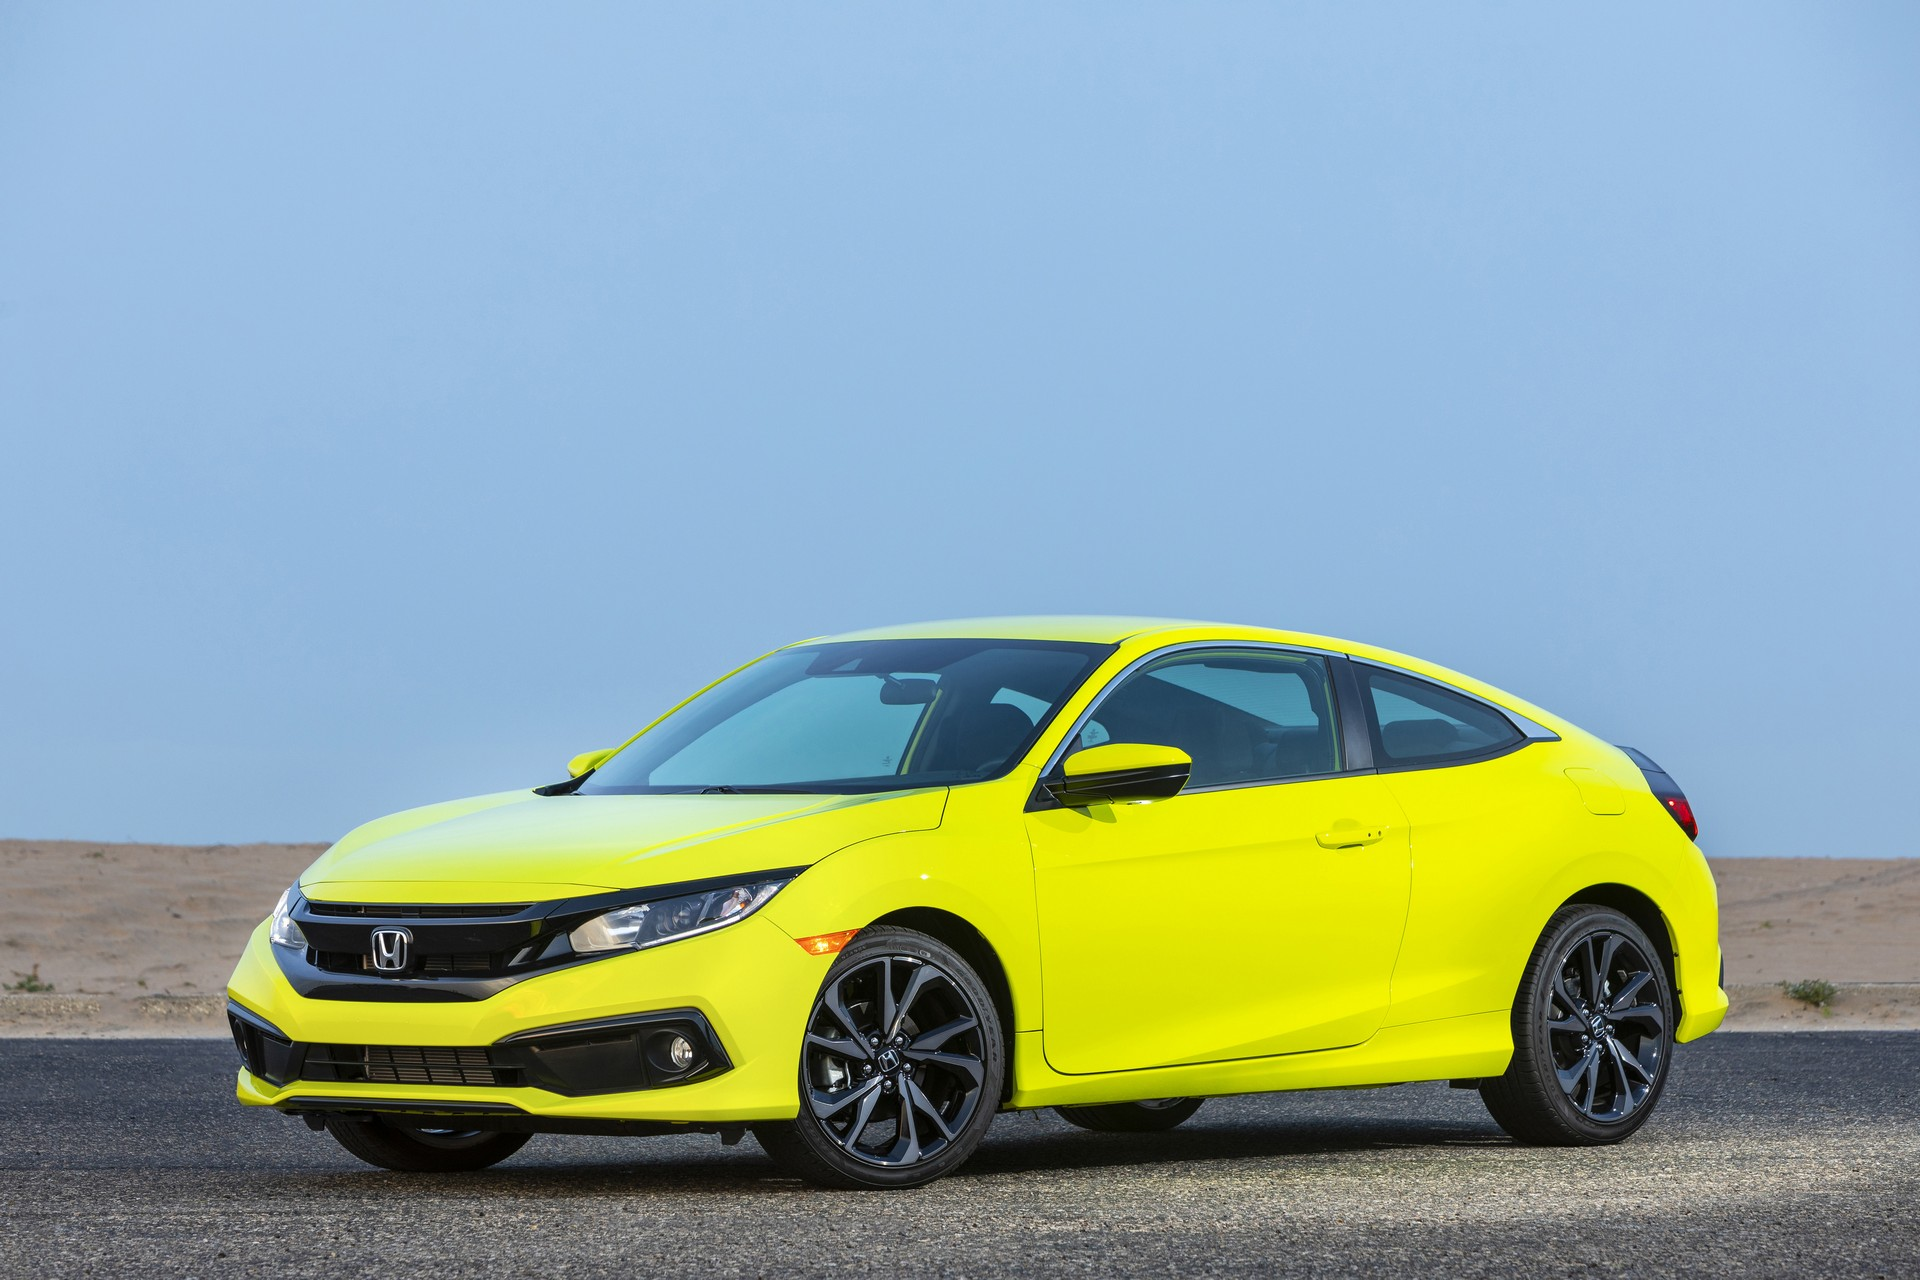 2020-honda-civic-7.jpg